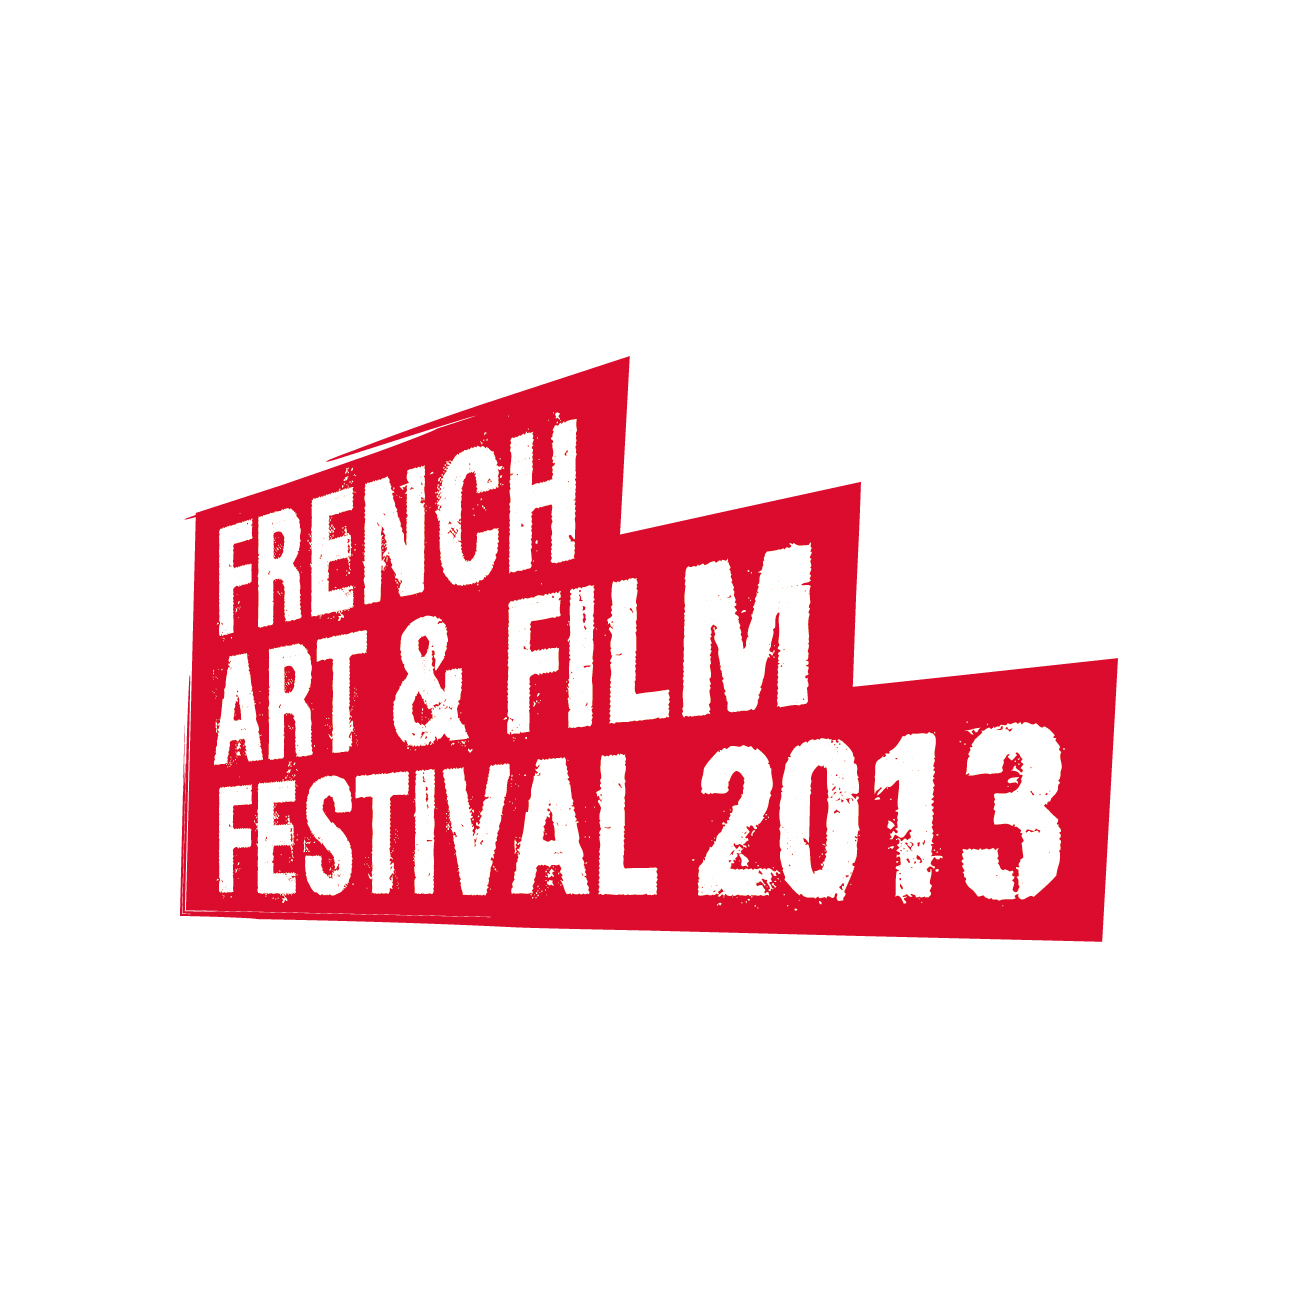 French Art & Film Festival 2013